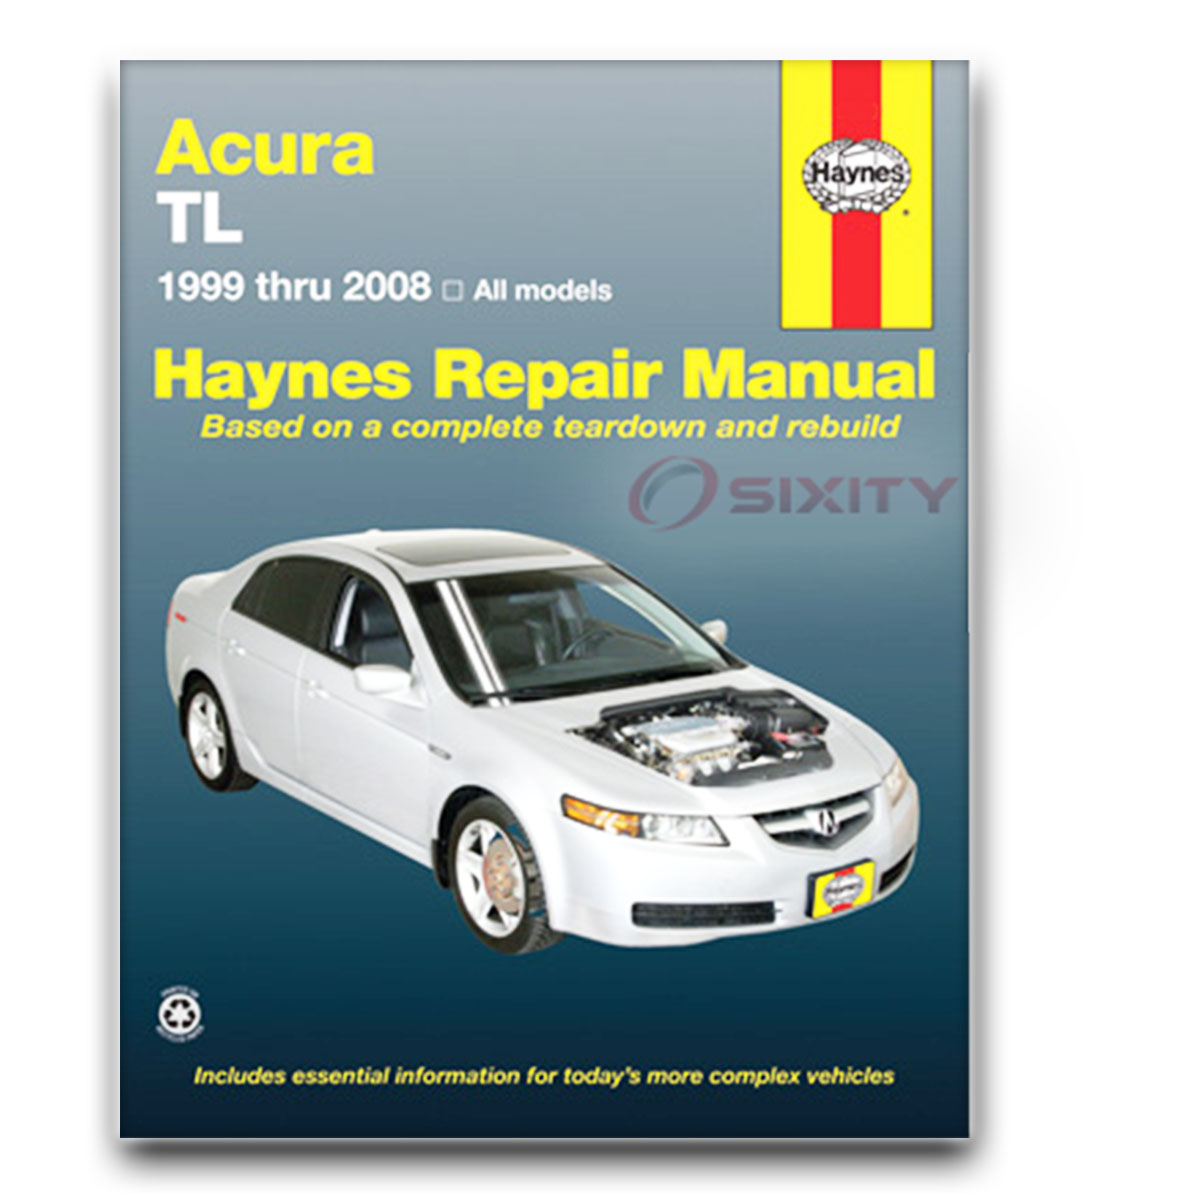 acura tl haynes repair manual base type s shop service garage book rh ebay com 2004 Acura TL 2000 Acura TL